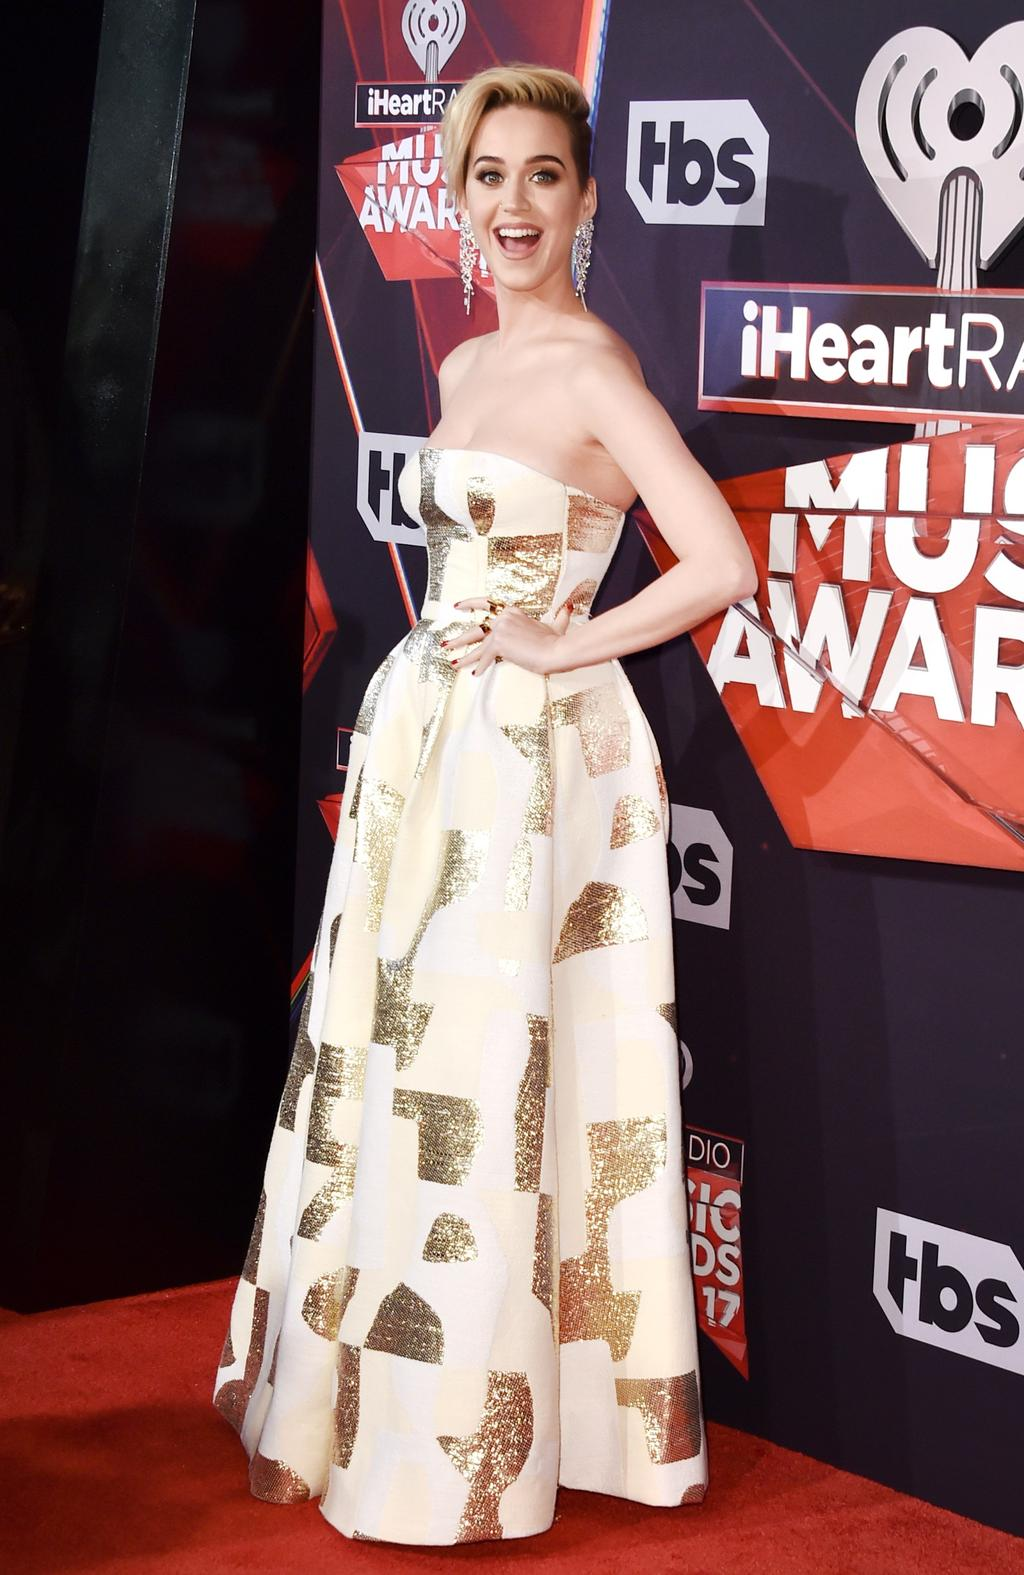 Katy Perry attends the 2017 iHeartRadio Music Awards on March 5, 2017 in Inglewood, California. Picture: AFP